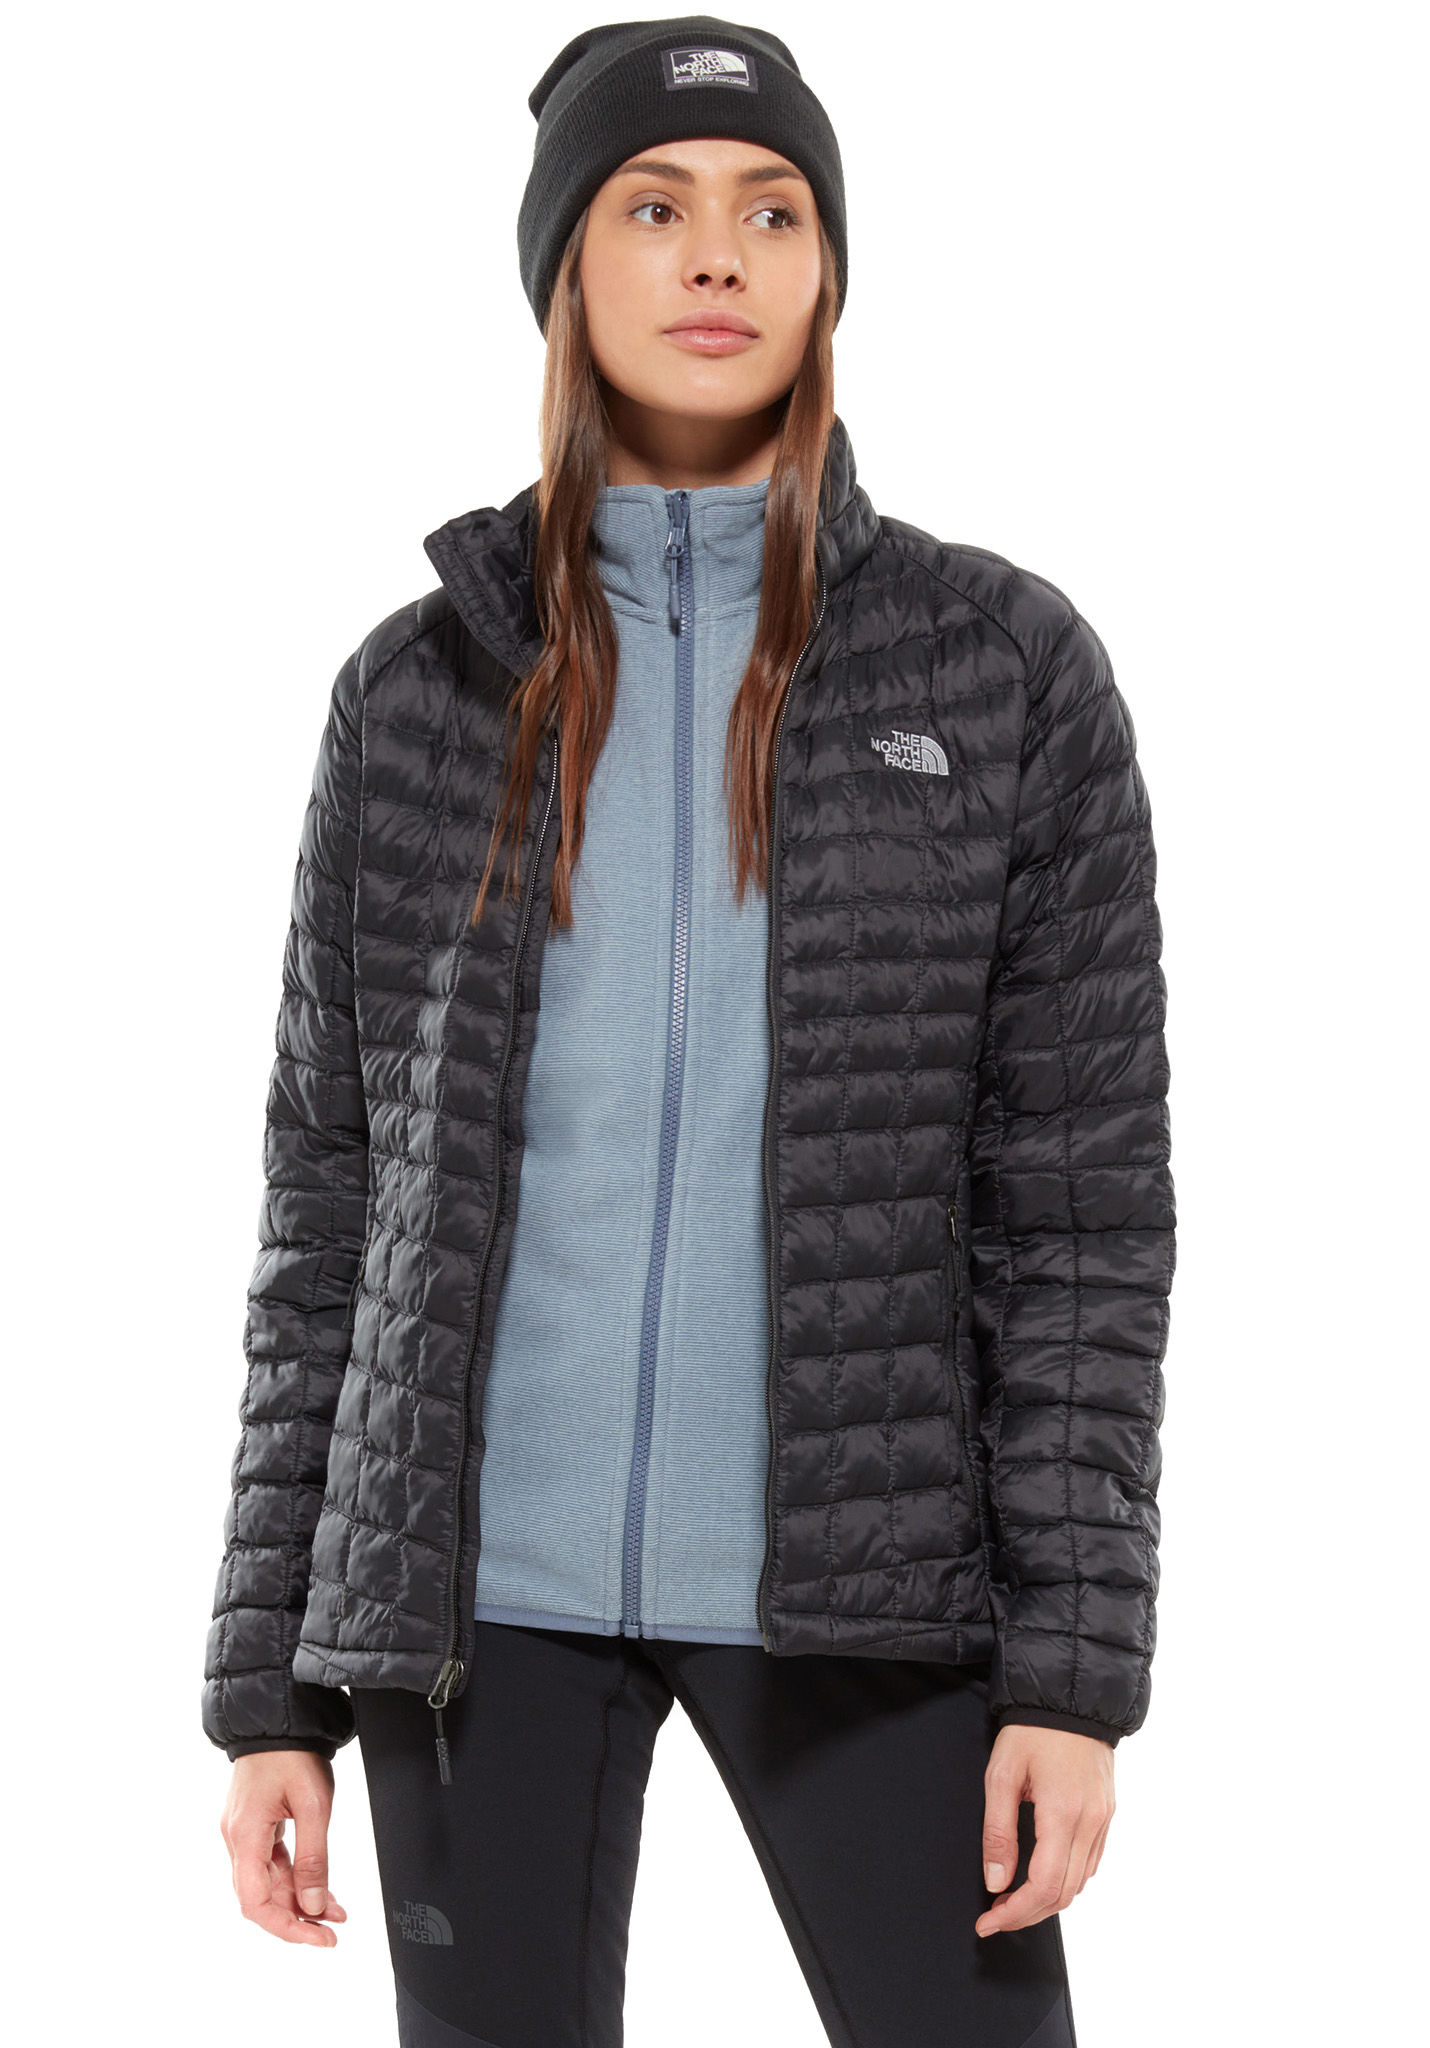 ef7f75147645 THE NORTH FACE Thermoball Sport - Outdoor Jacket for Women - Black - Planet  Sports